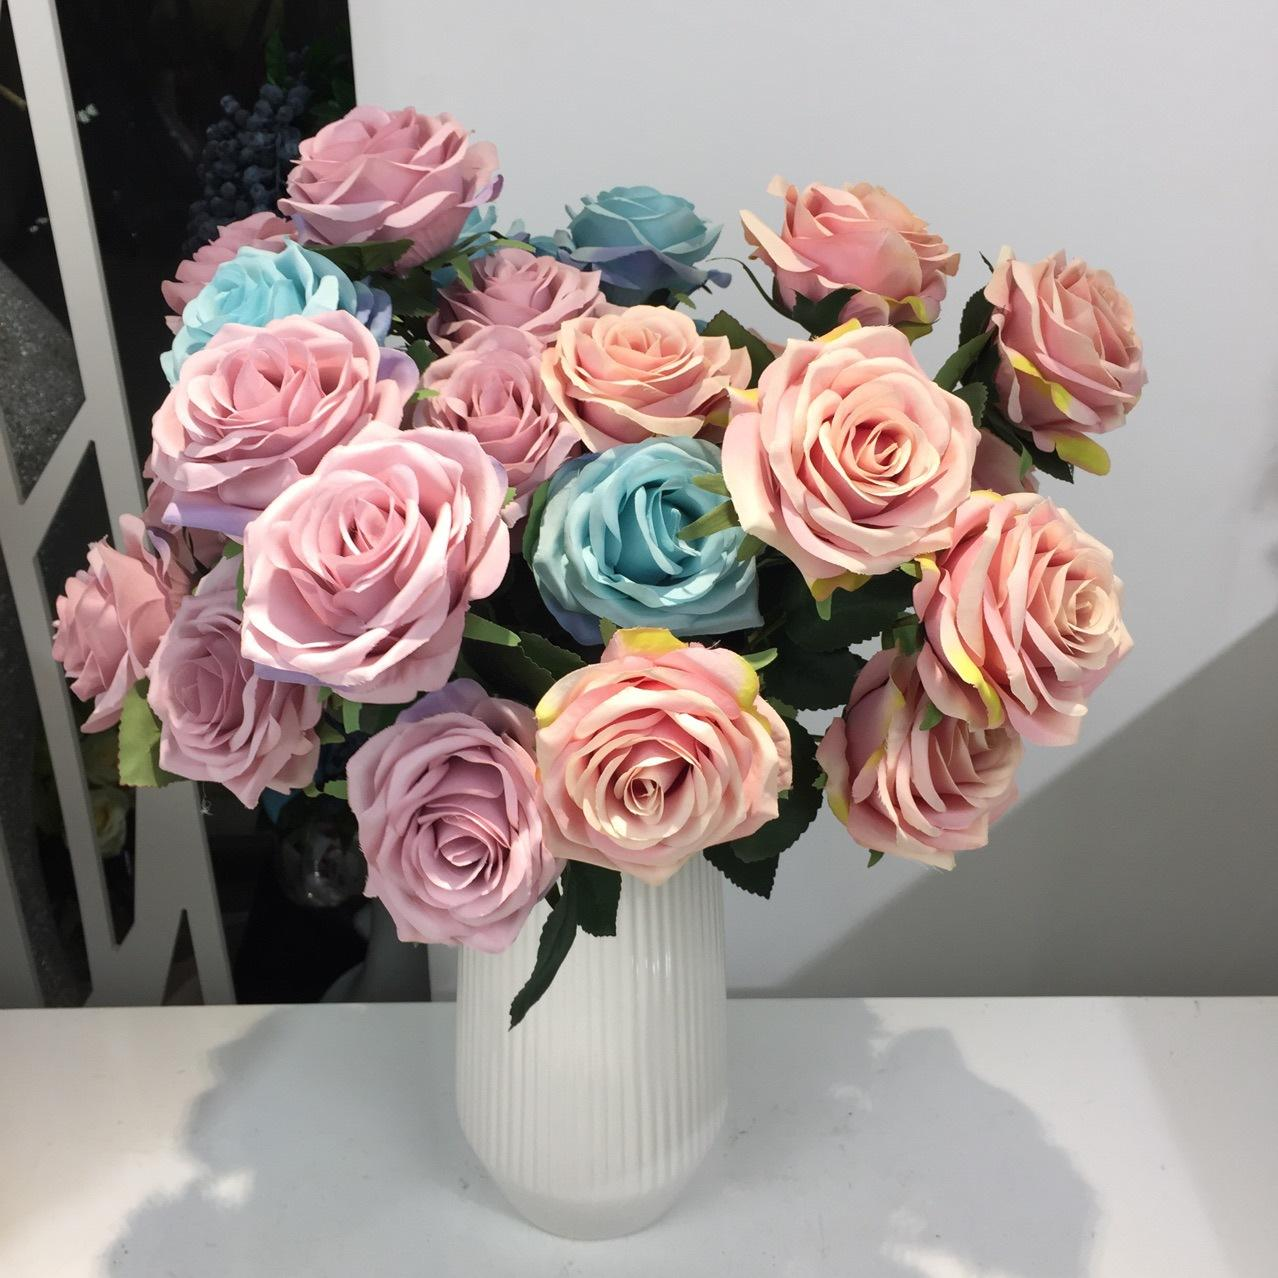 2018 artificial silk 1 bunch french rose floral bouquet fake flower 2018 artificial silk 1 bunch french rose floral bouquet fake flower arrange table daisy wedding flowers decor party accessory flores from glasssmoke izmirmasajfo